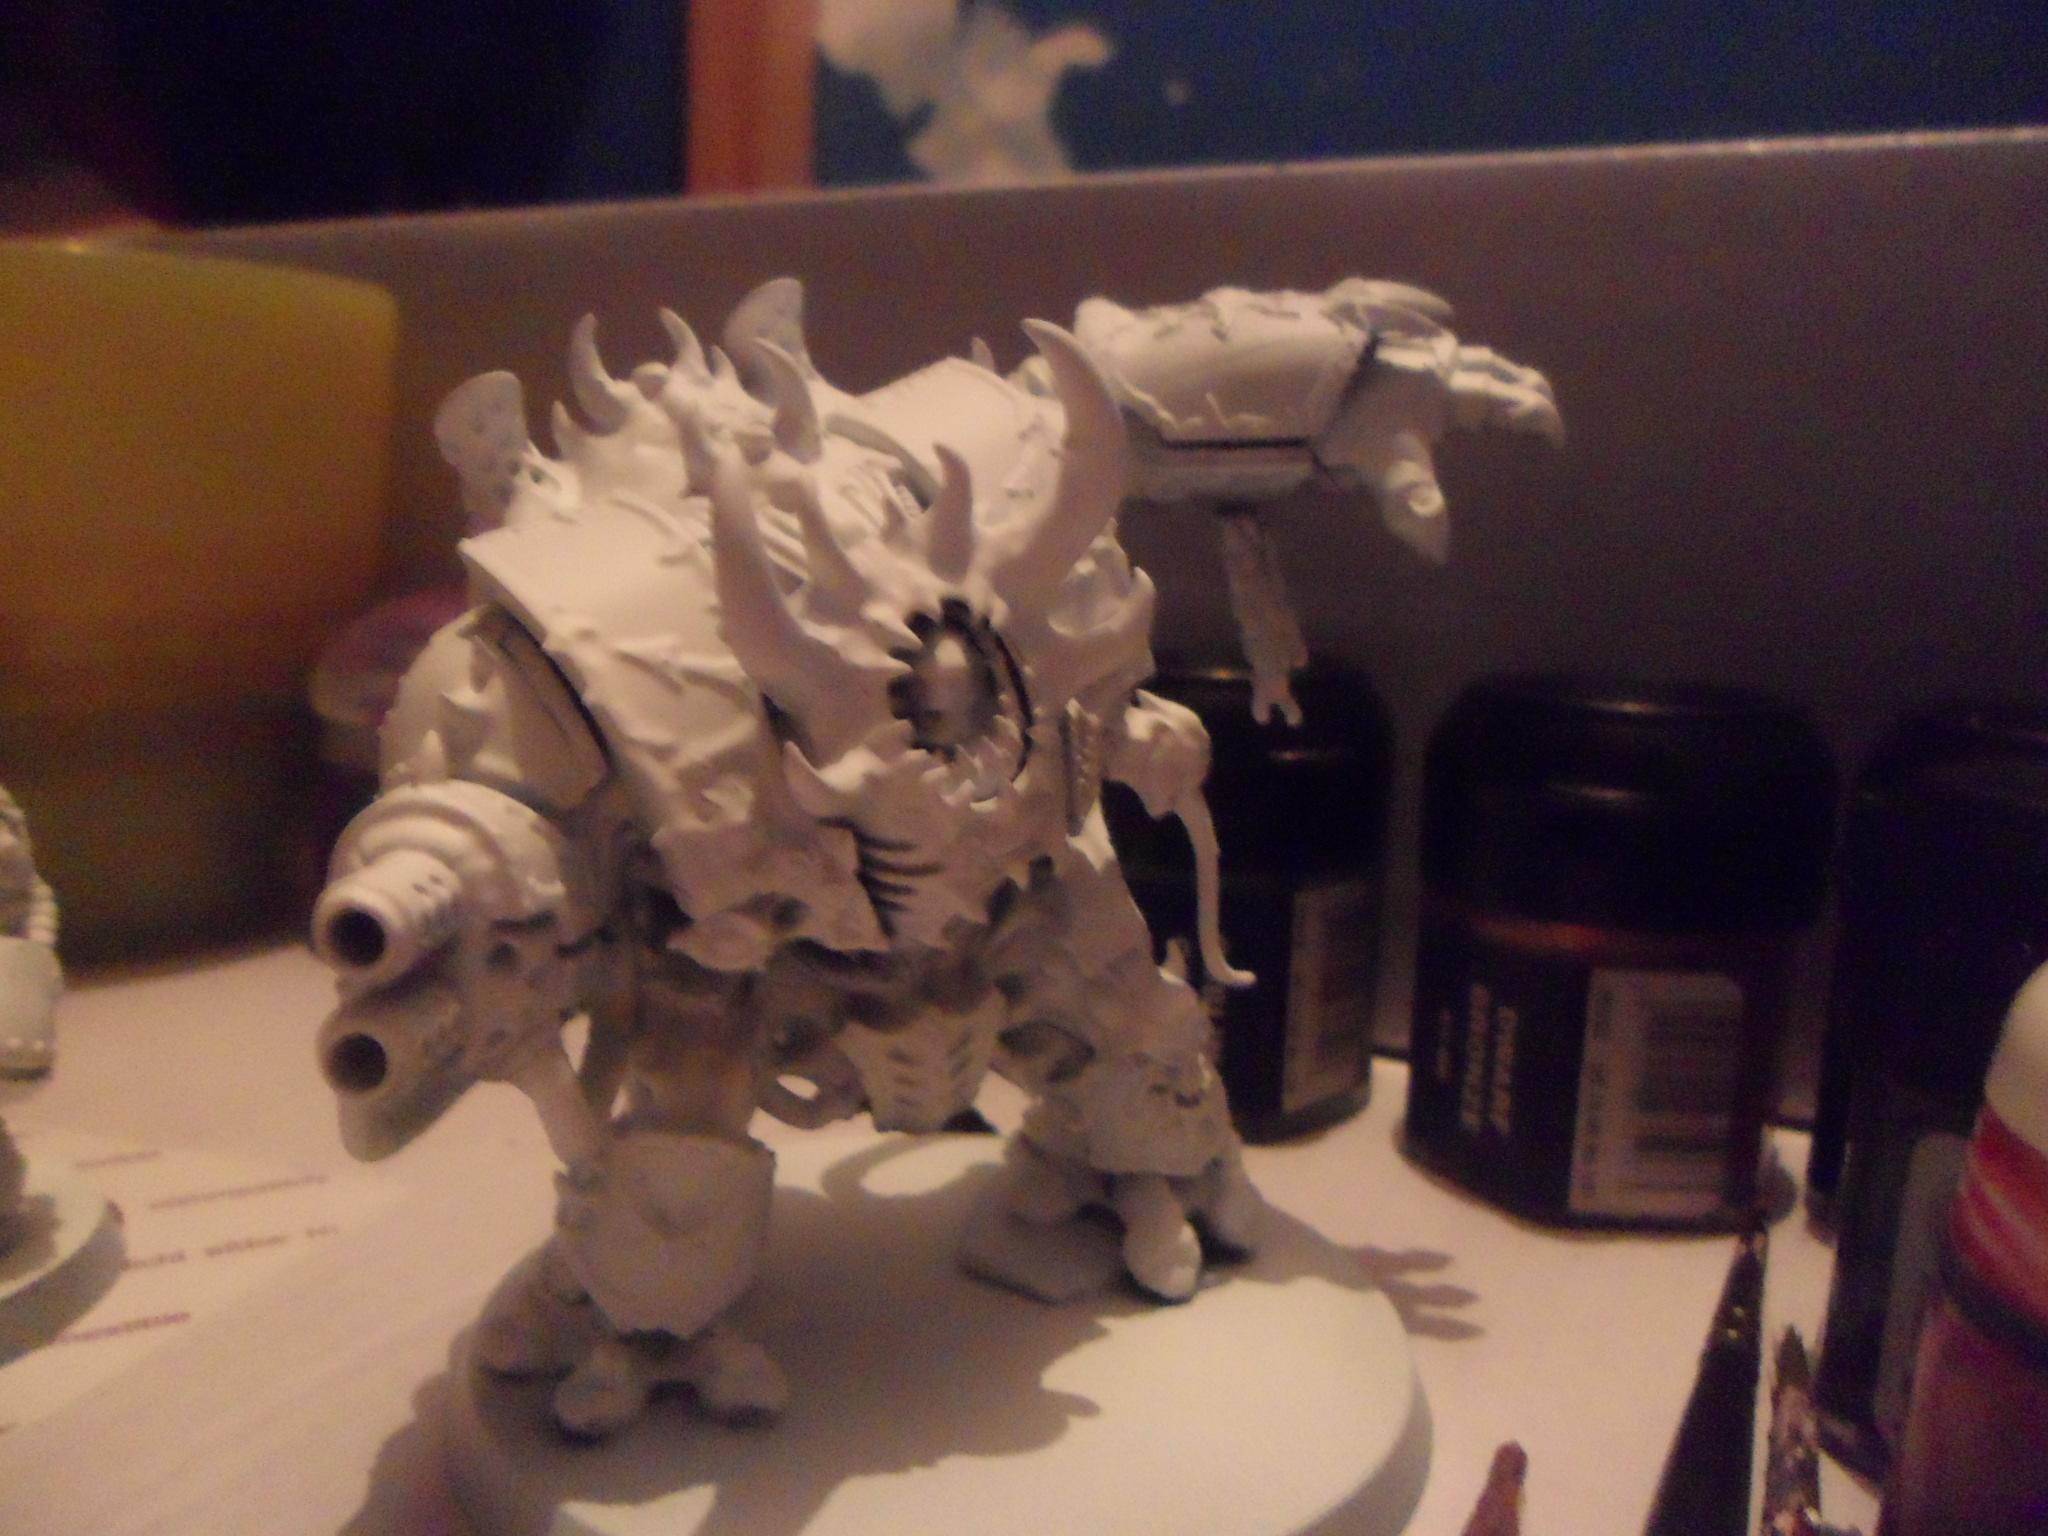 The Helbrute will receive a dryad head like the rest